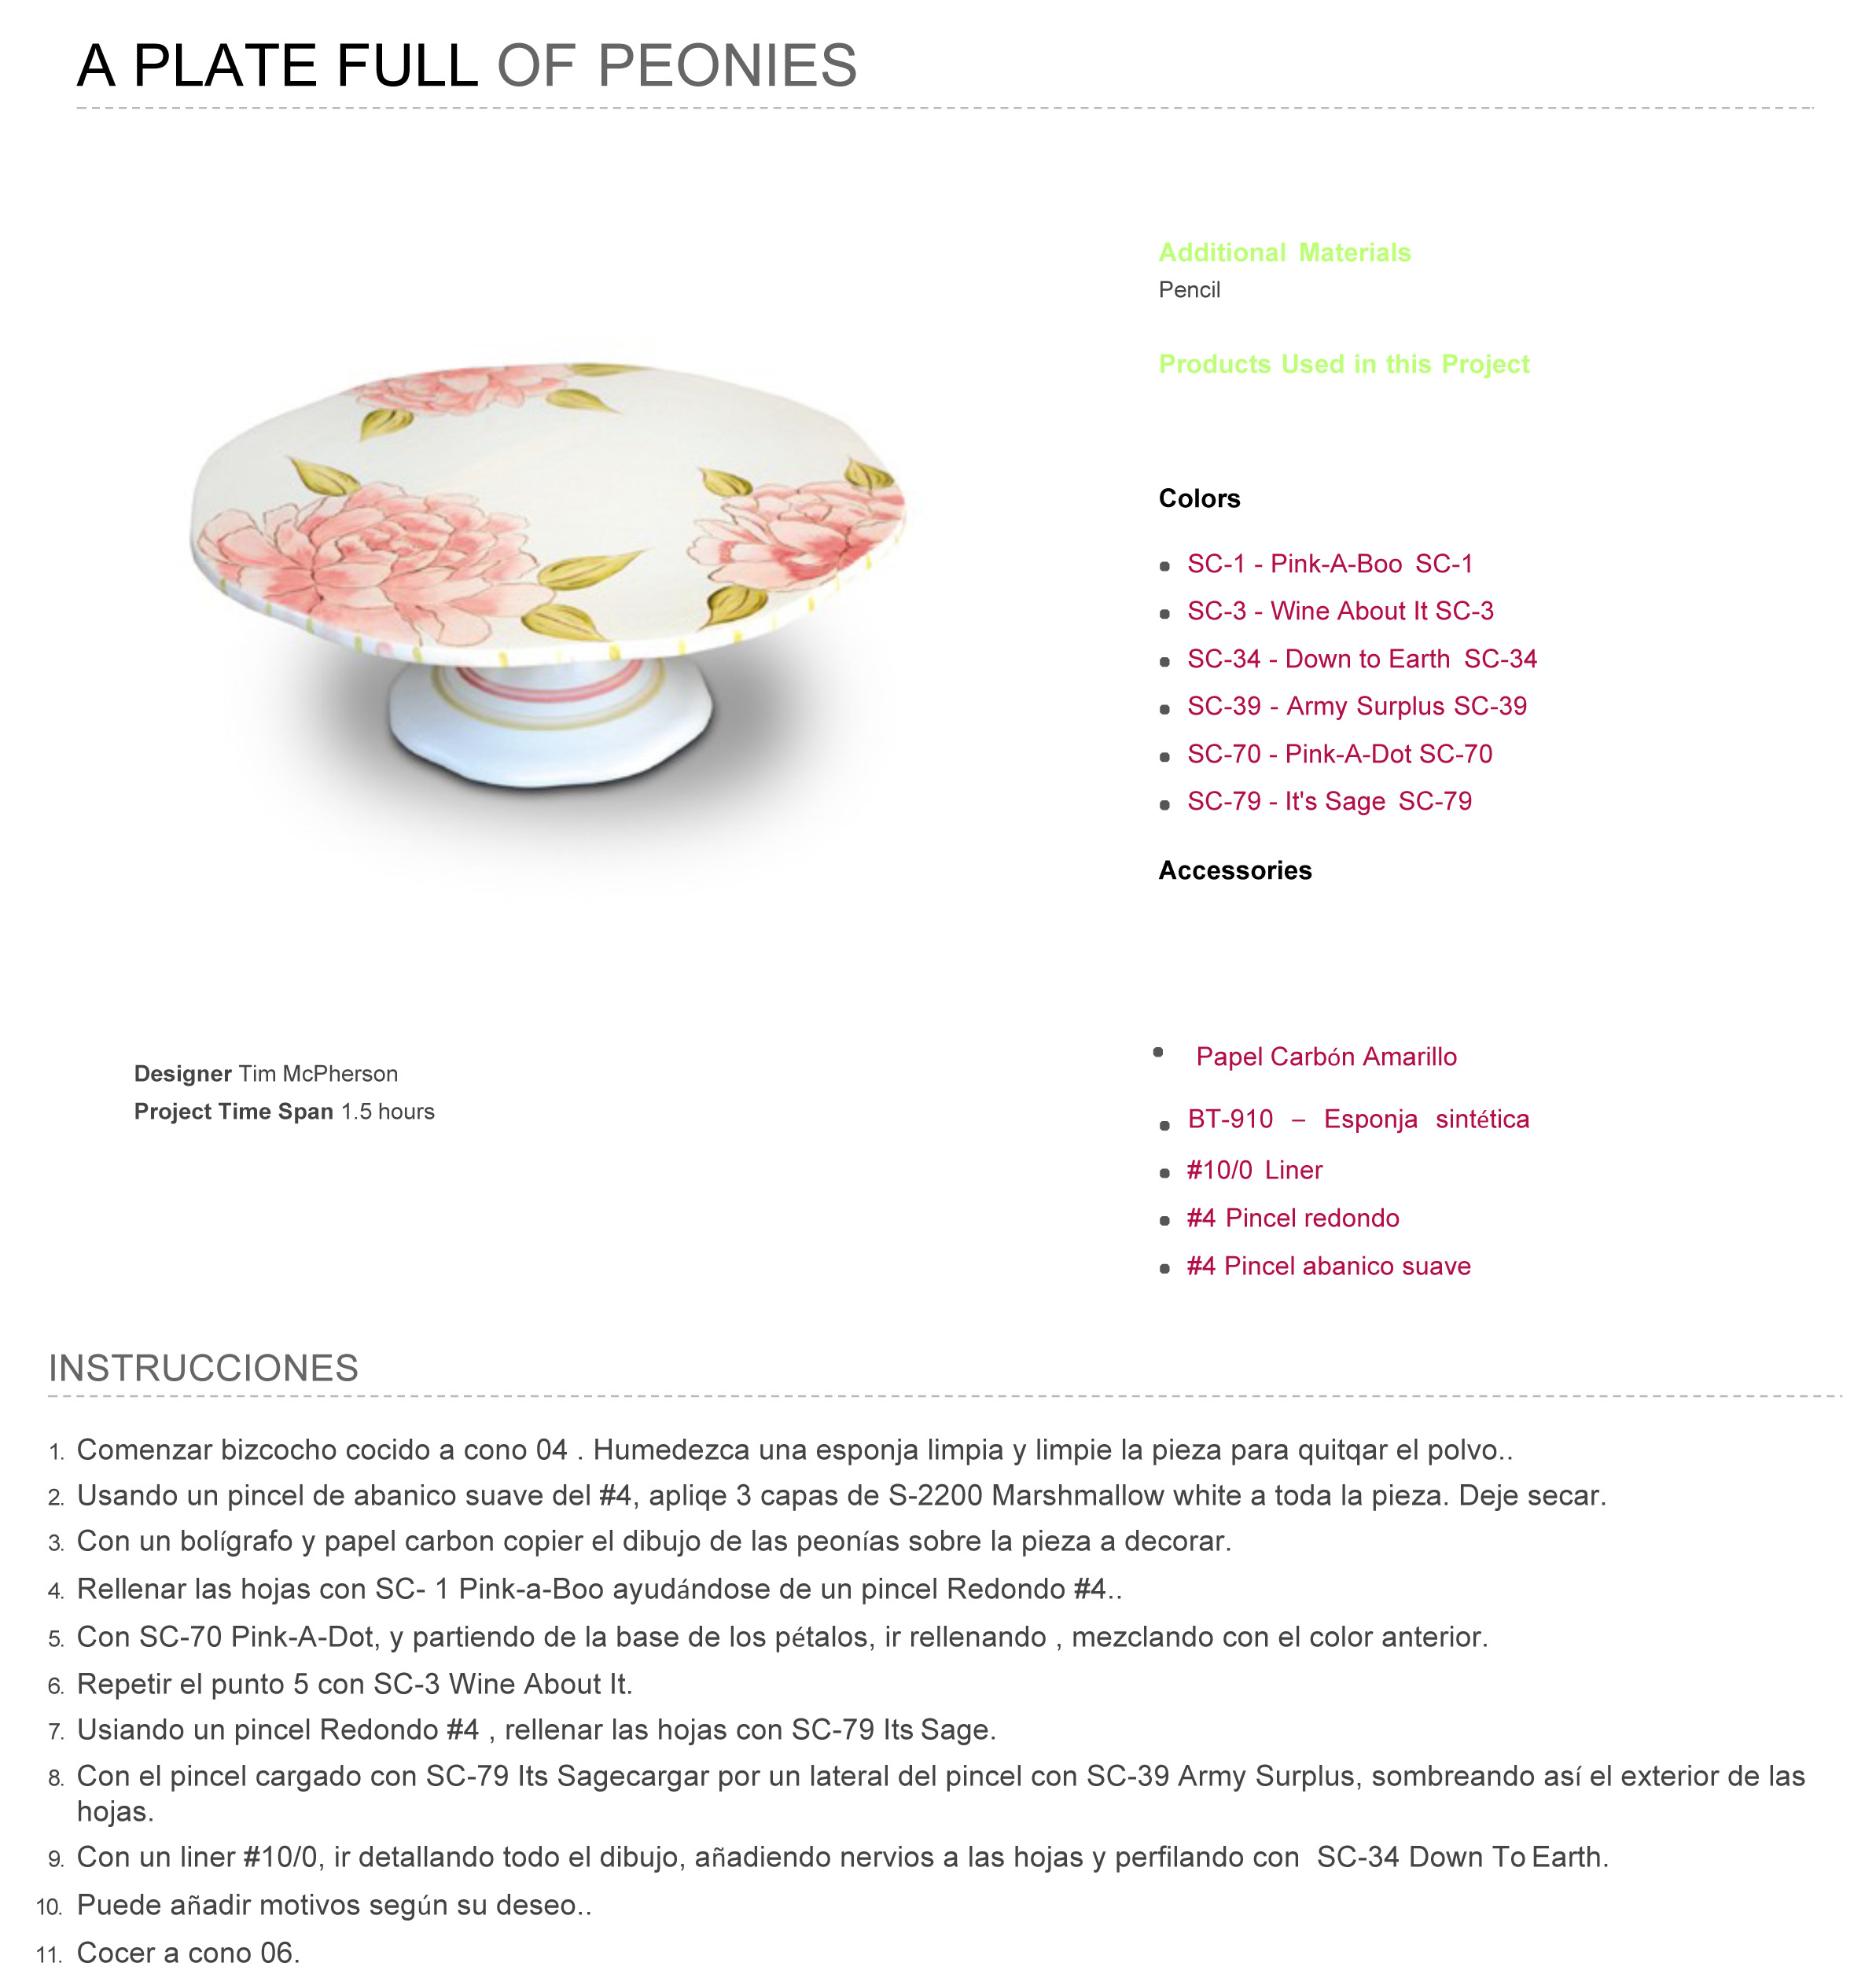 Microsoft Word - A Plate Full of Peonies2.docx